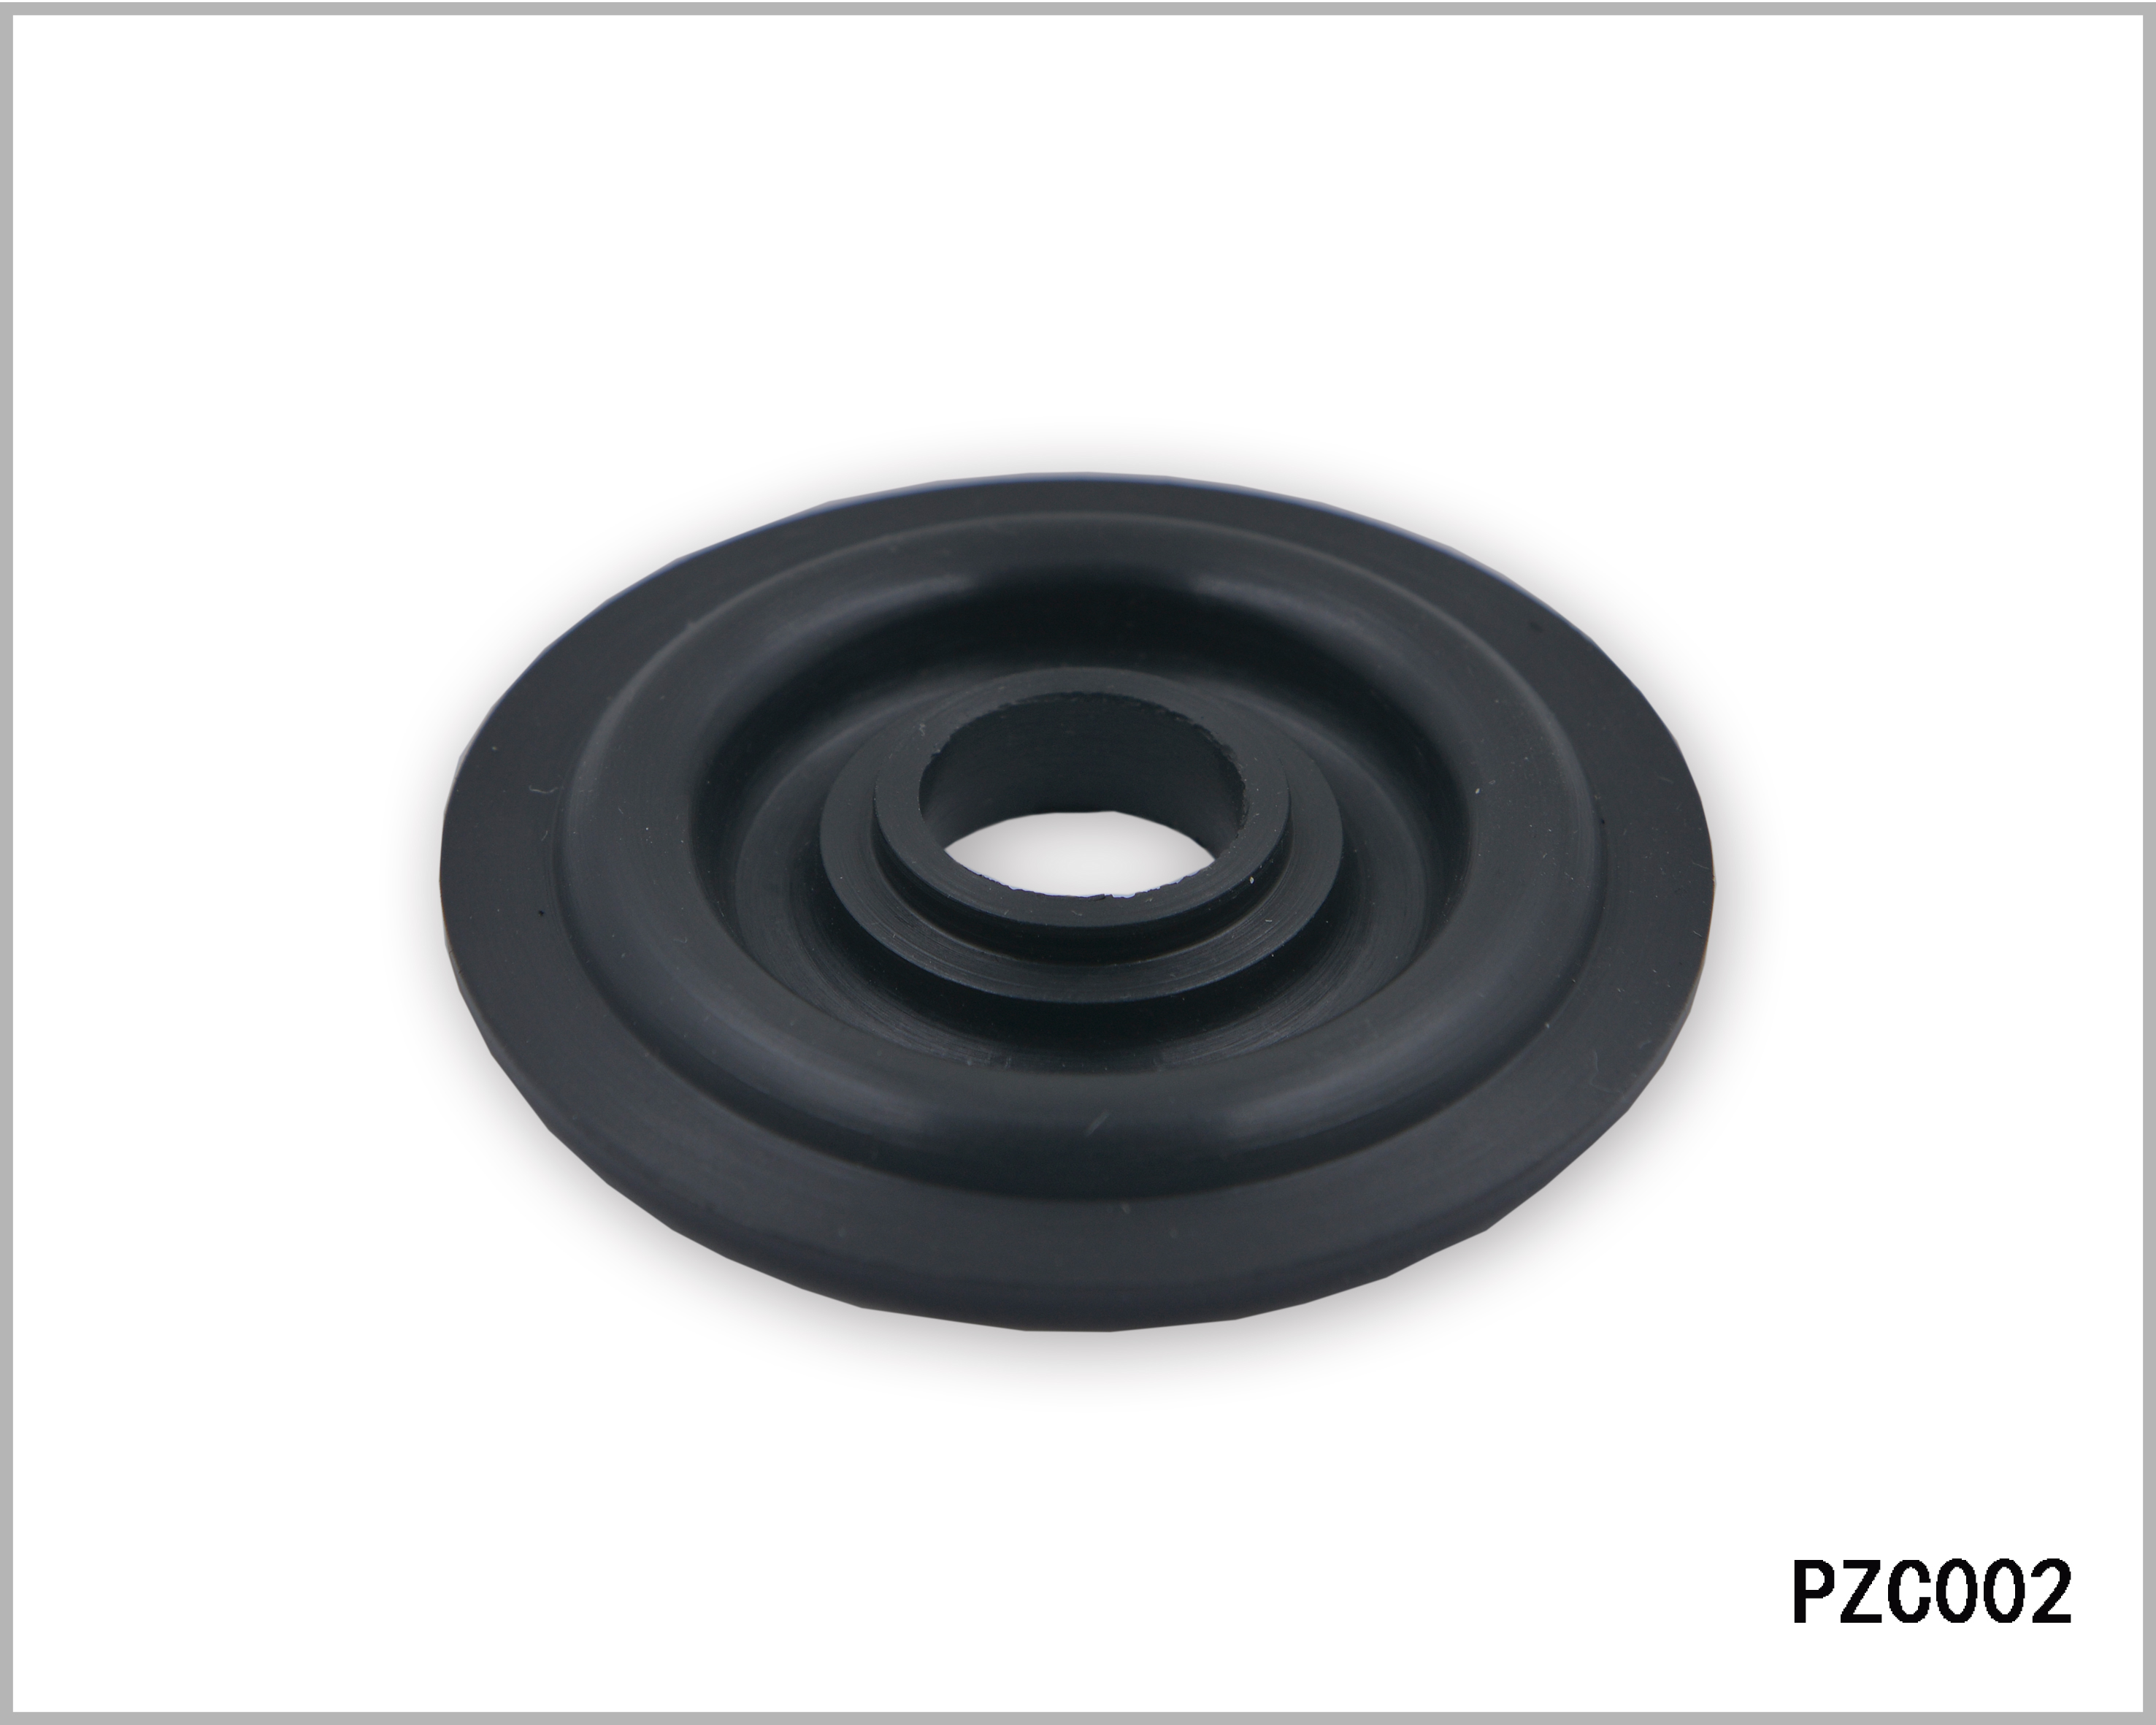 Rubber Diaphragm-Pressurized Consistometer